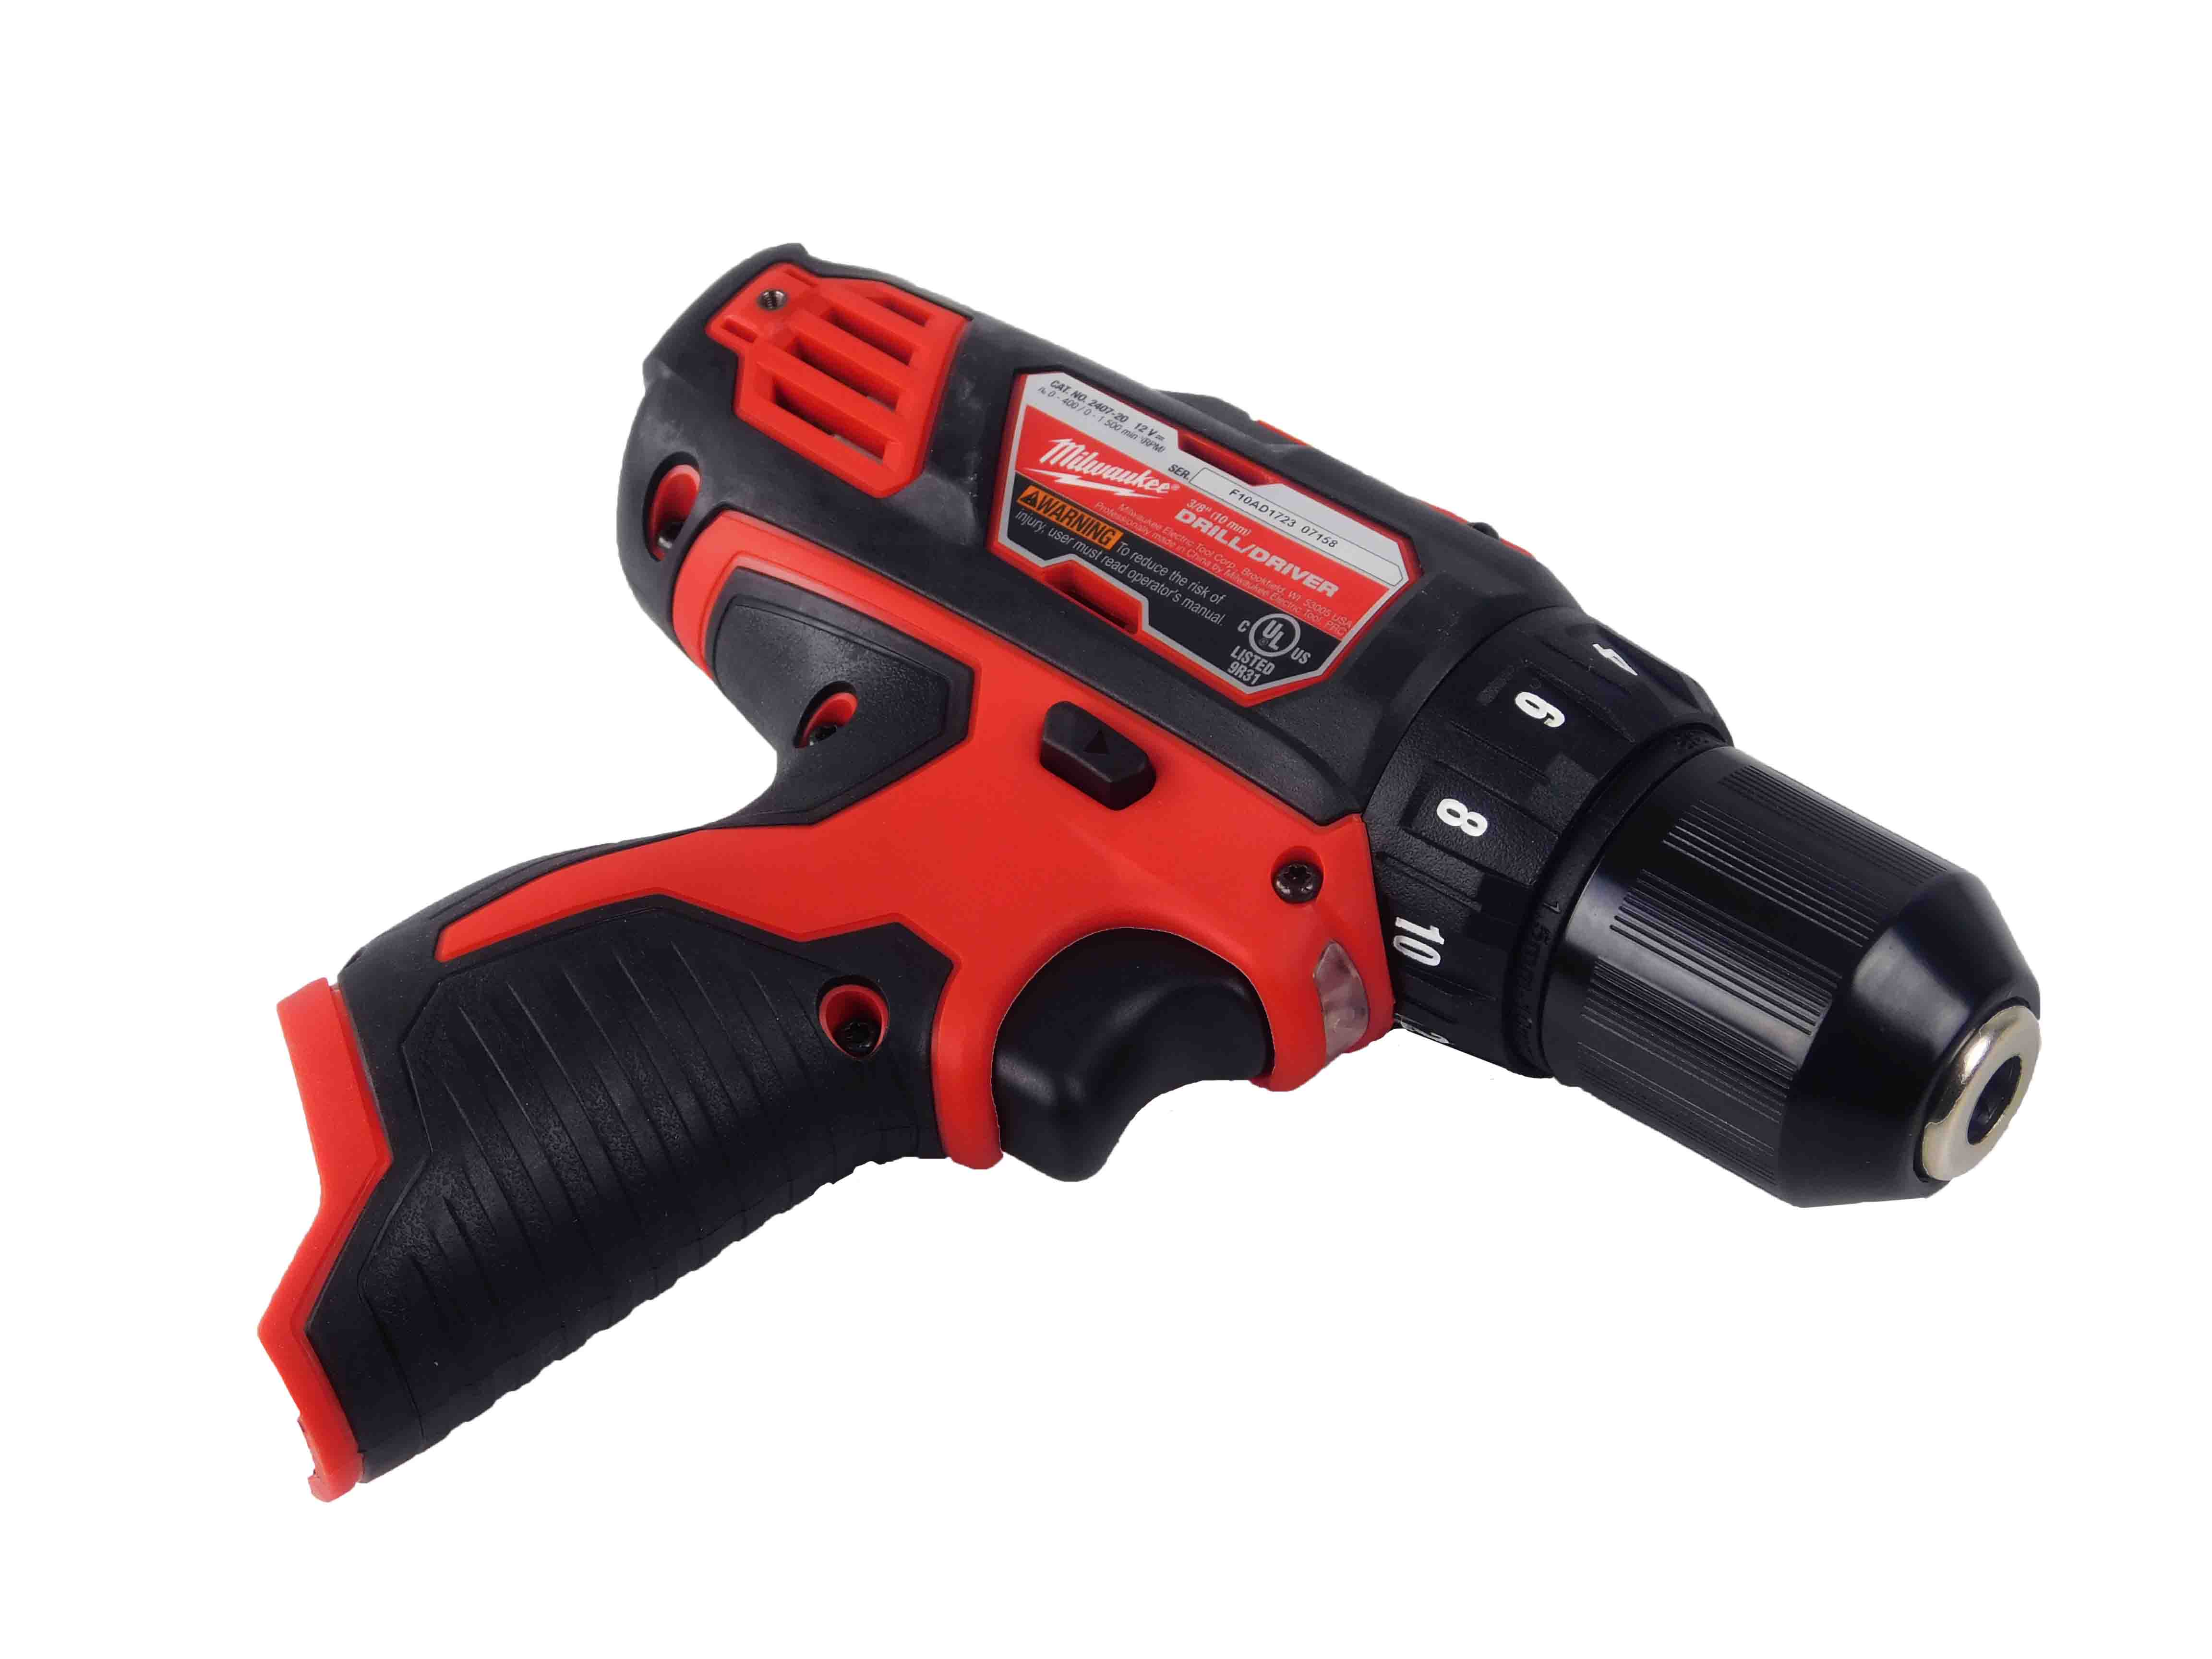 Milwaukee-2407-20-12V-M12-3-8inch-Chuck-Drill-Driver-2-Speed-image-3